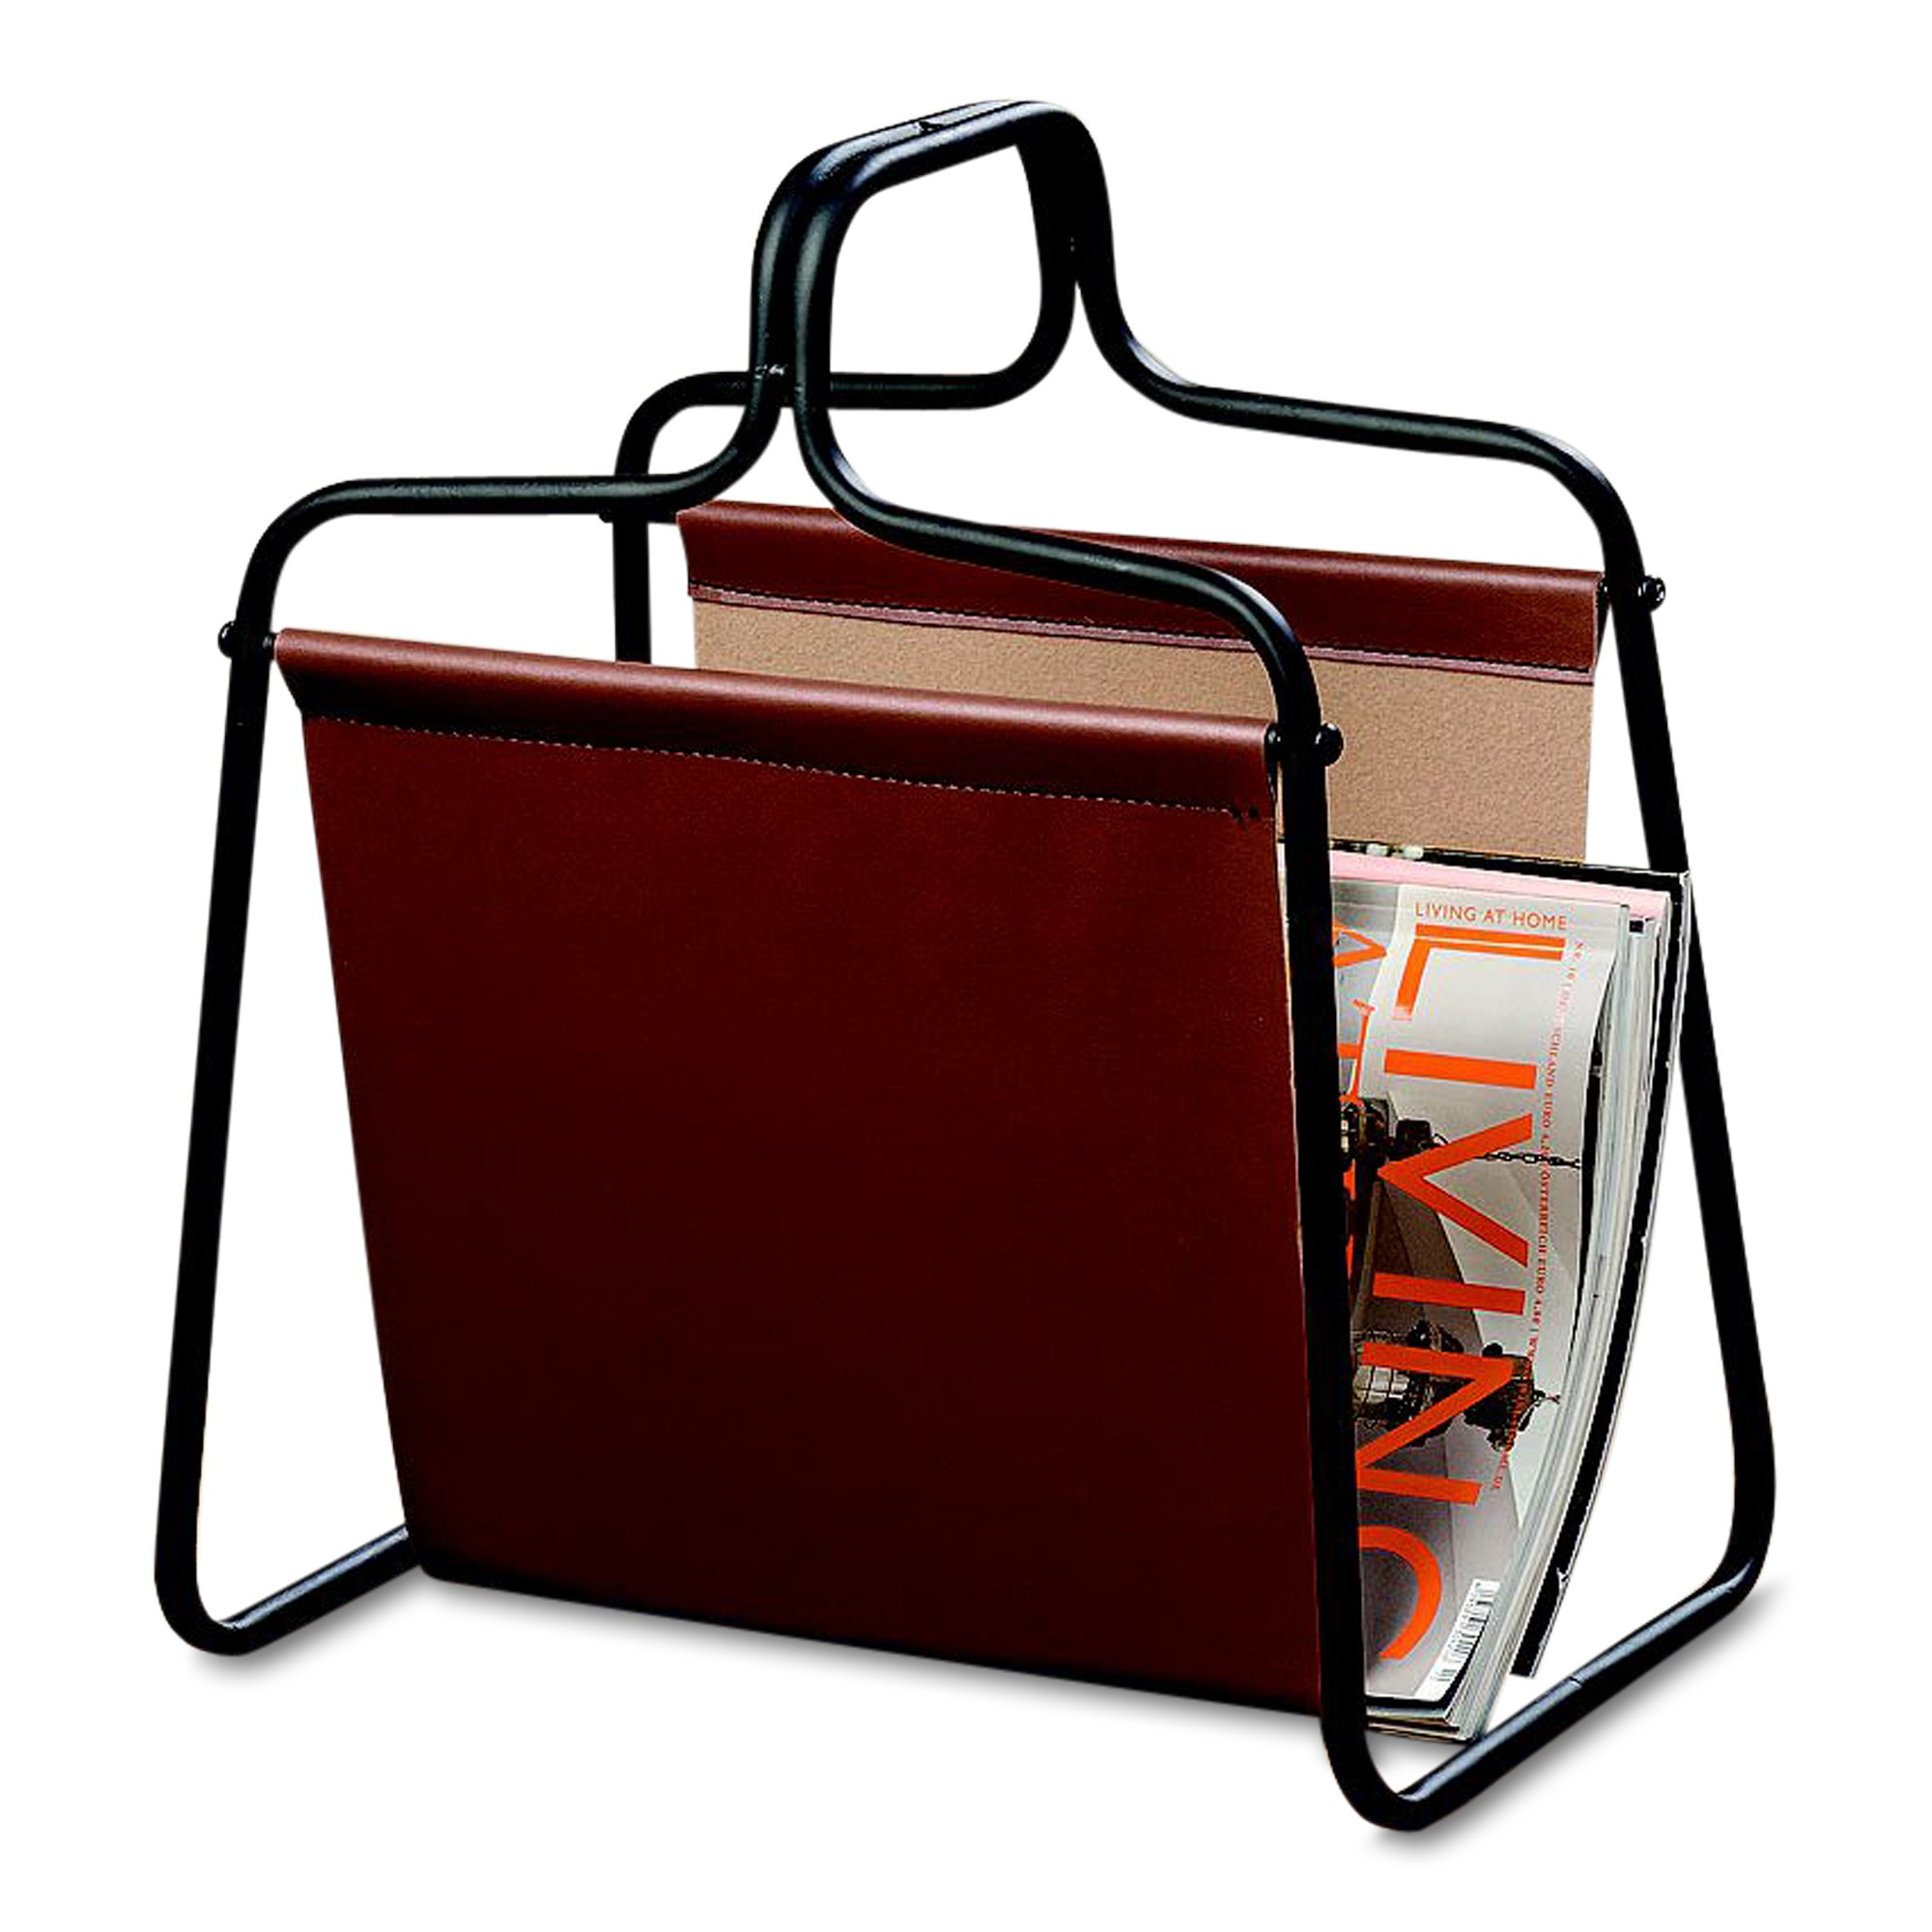 Whole House Worlds The Chelsea Magazine Holder Rack, Open Black Metal Frame, Brown Faux Leather Sling, Over 1 Ft Tall, (13 1/2 L x 9 3/4 W x 15 3/4 H Inches) By WHW